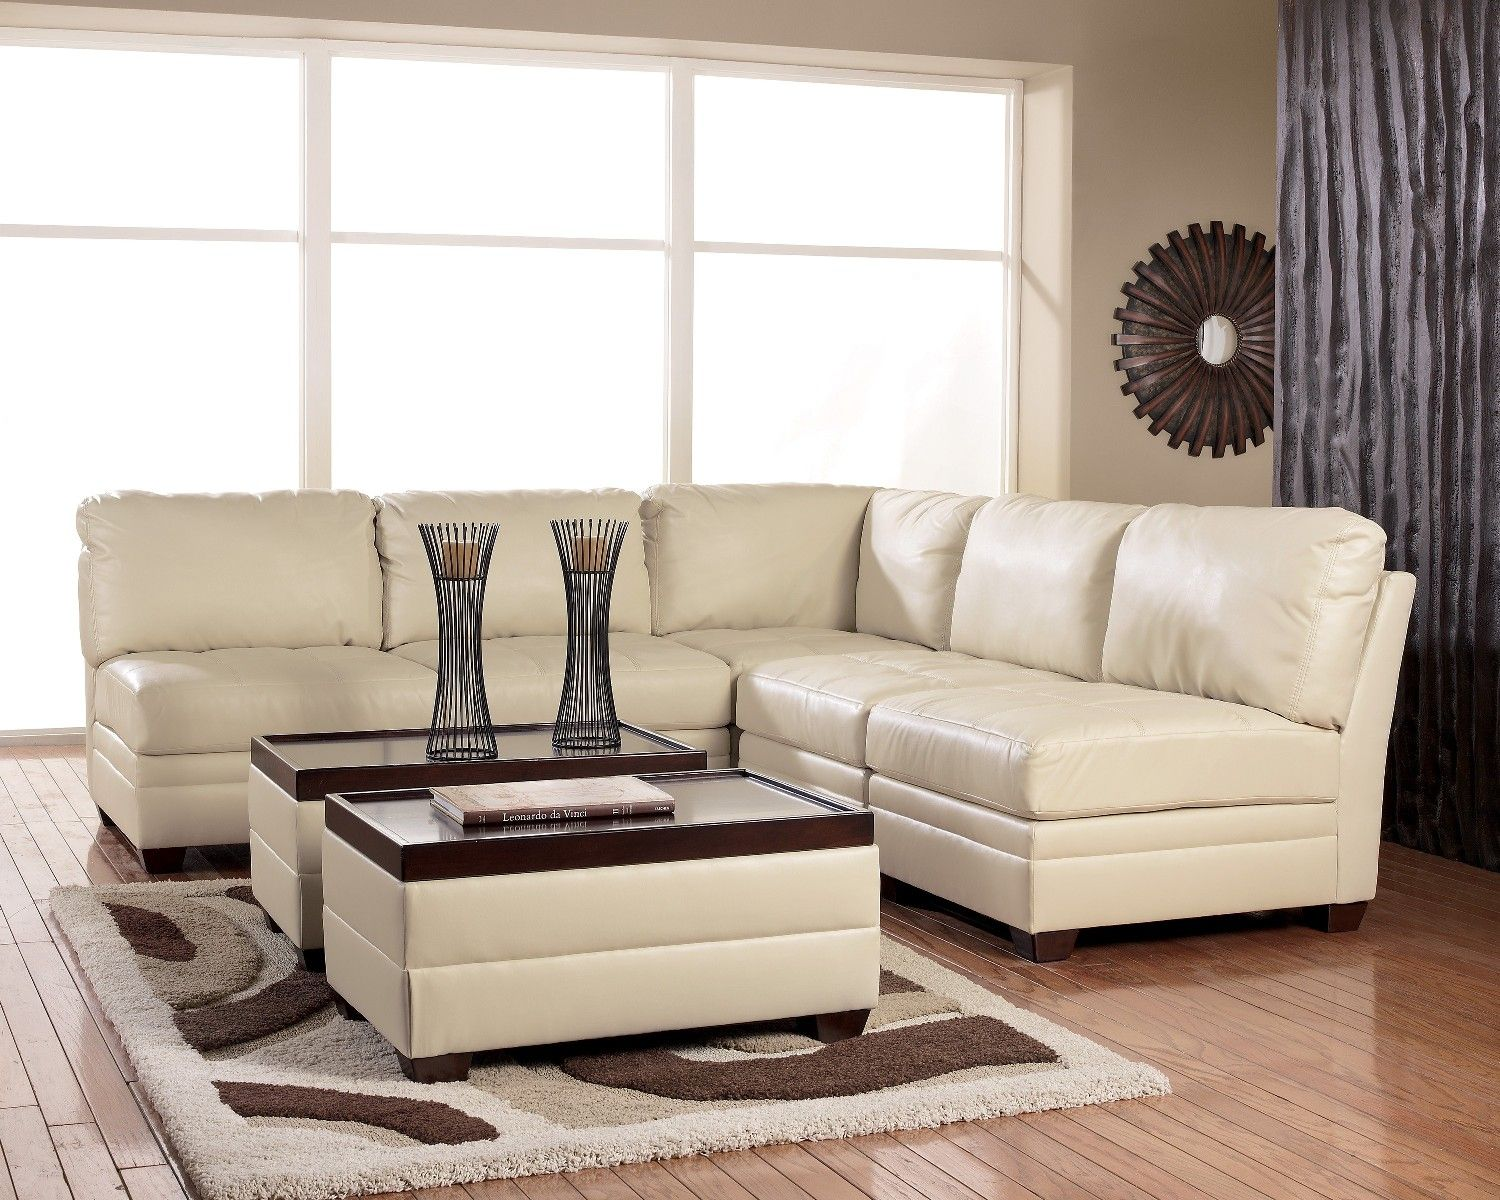 The Exciting Features Of Modern Sofa Designs White Leather Sofas Ashley Furniture Sectional Best Leather Sofa